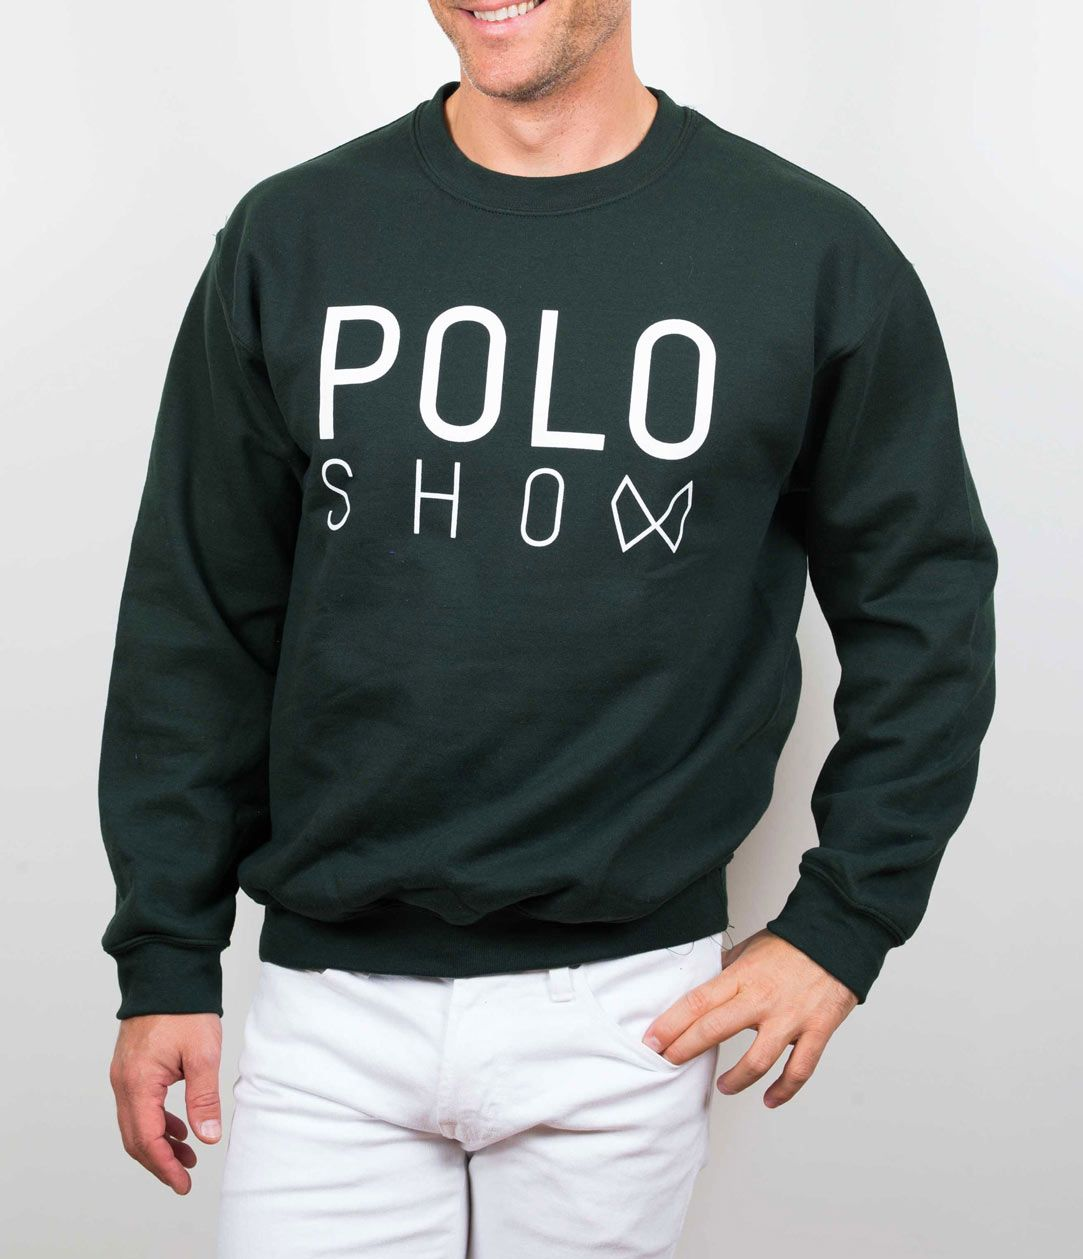 Poloshow sweater green 4